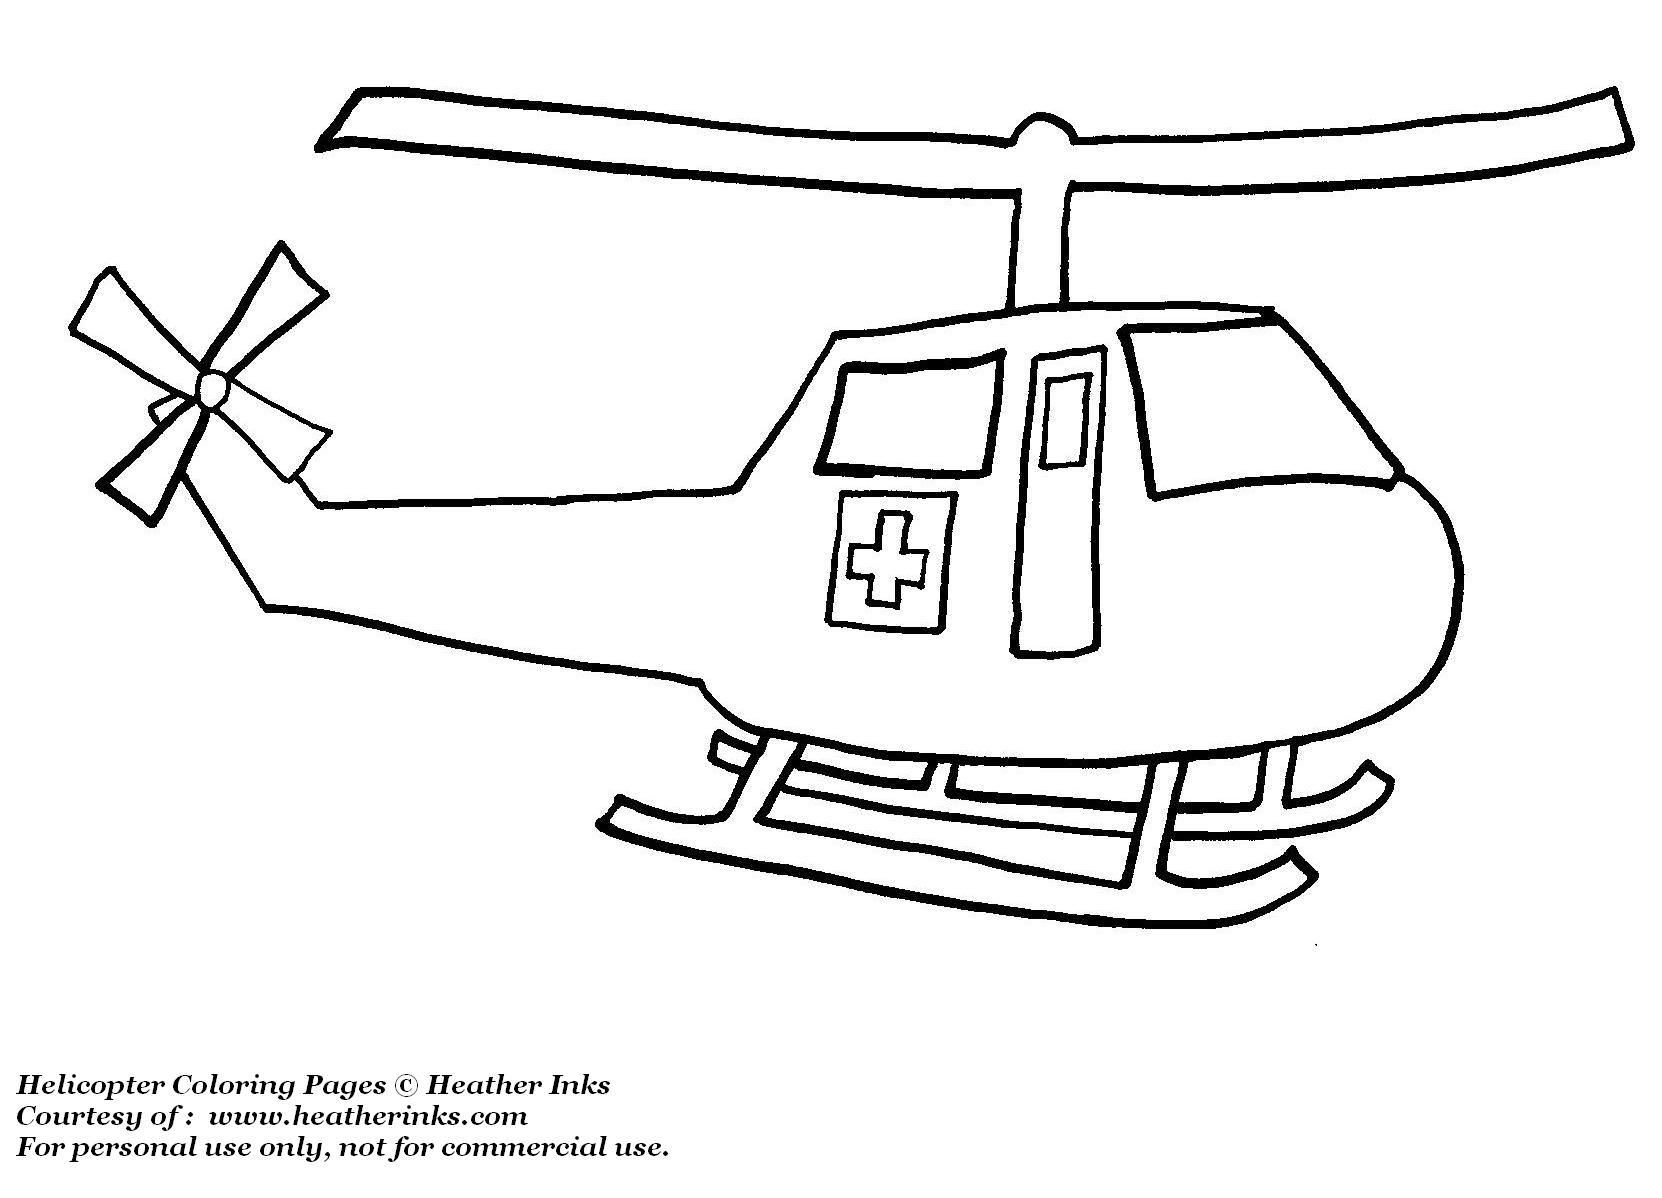 airplane and helicopter coloring pages coloring pages kids helicopter coloring pages to print airplane helicopter coloring pages and